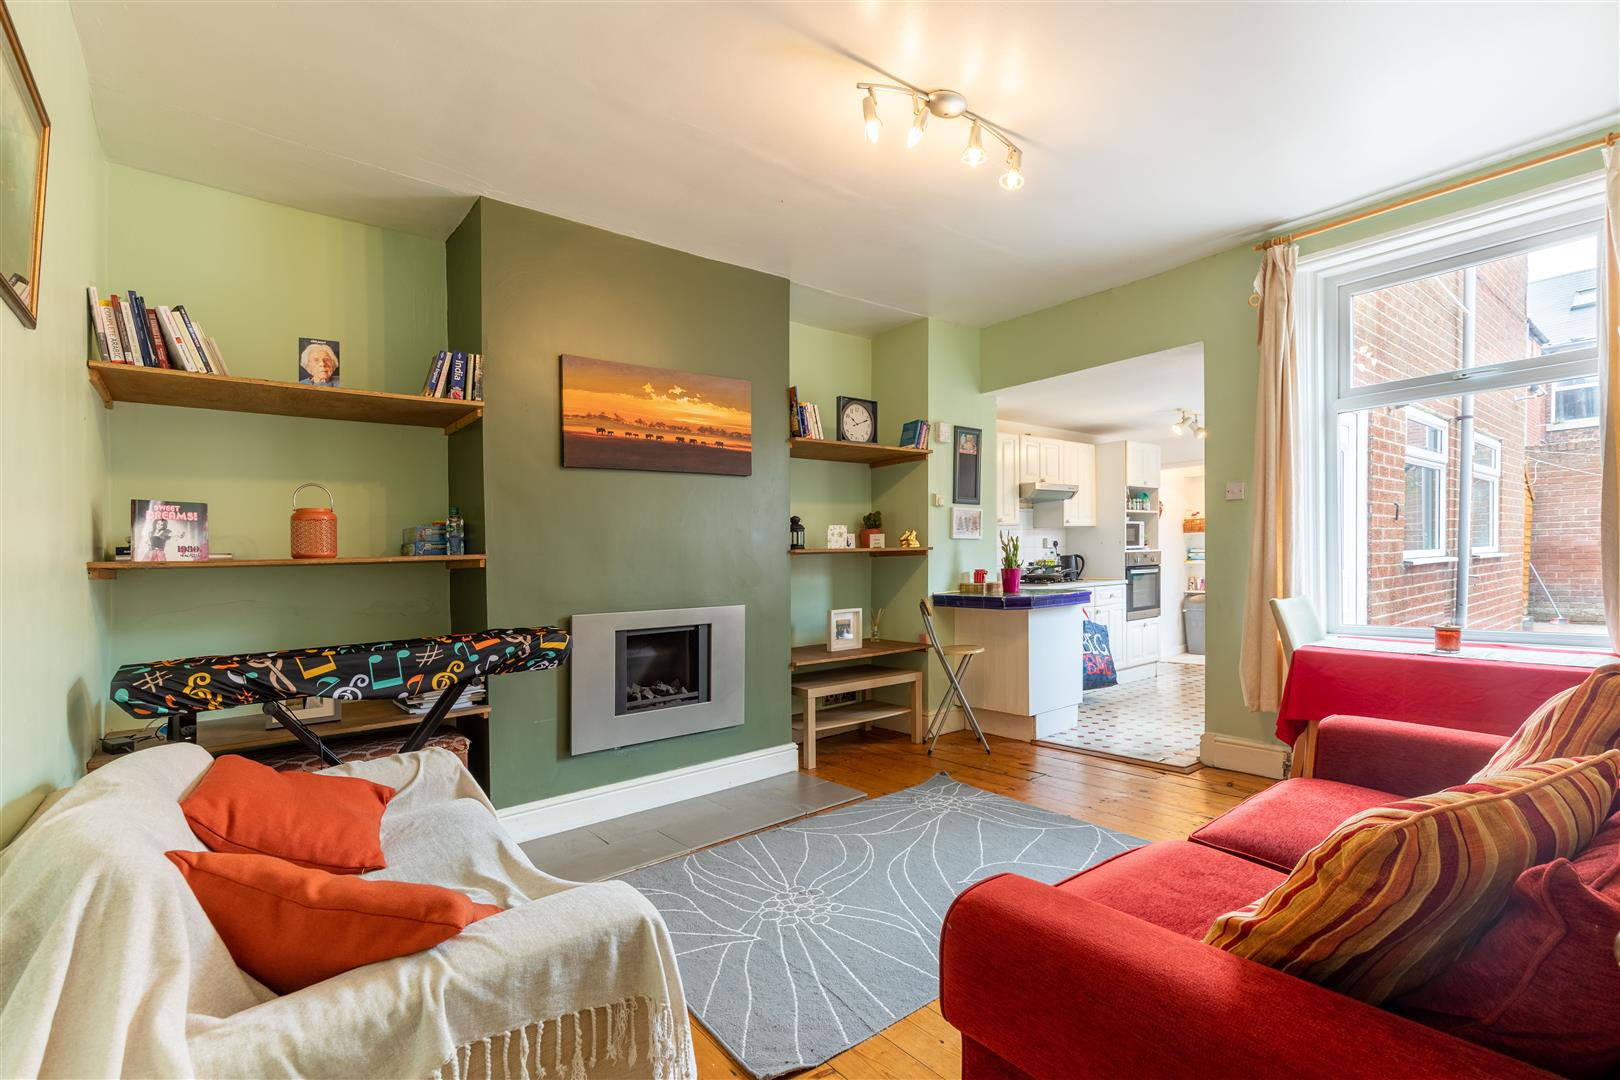 2 bed flat for sale in Newcastle Upon Tyne, NE6 5PL - Property Image 1